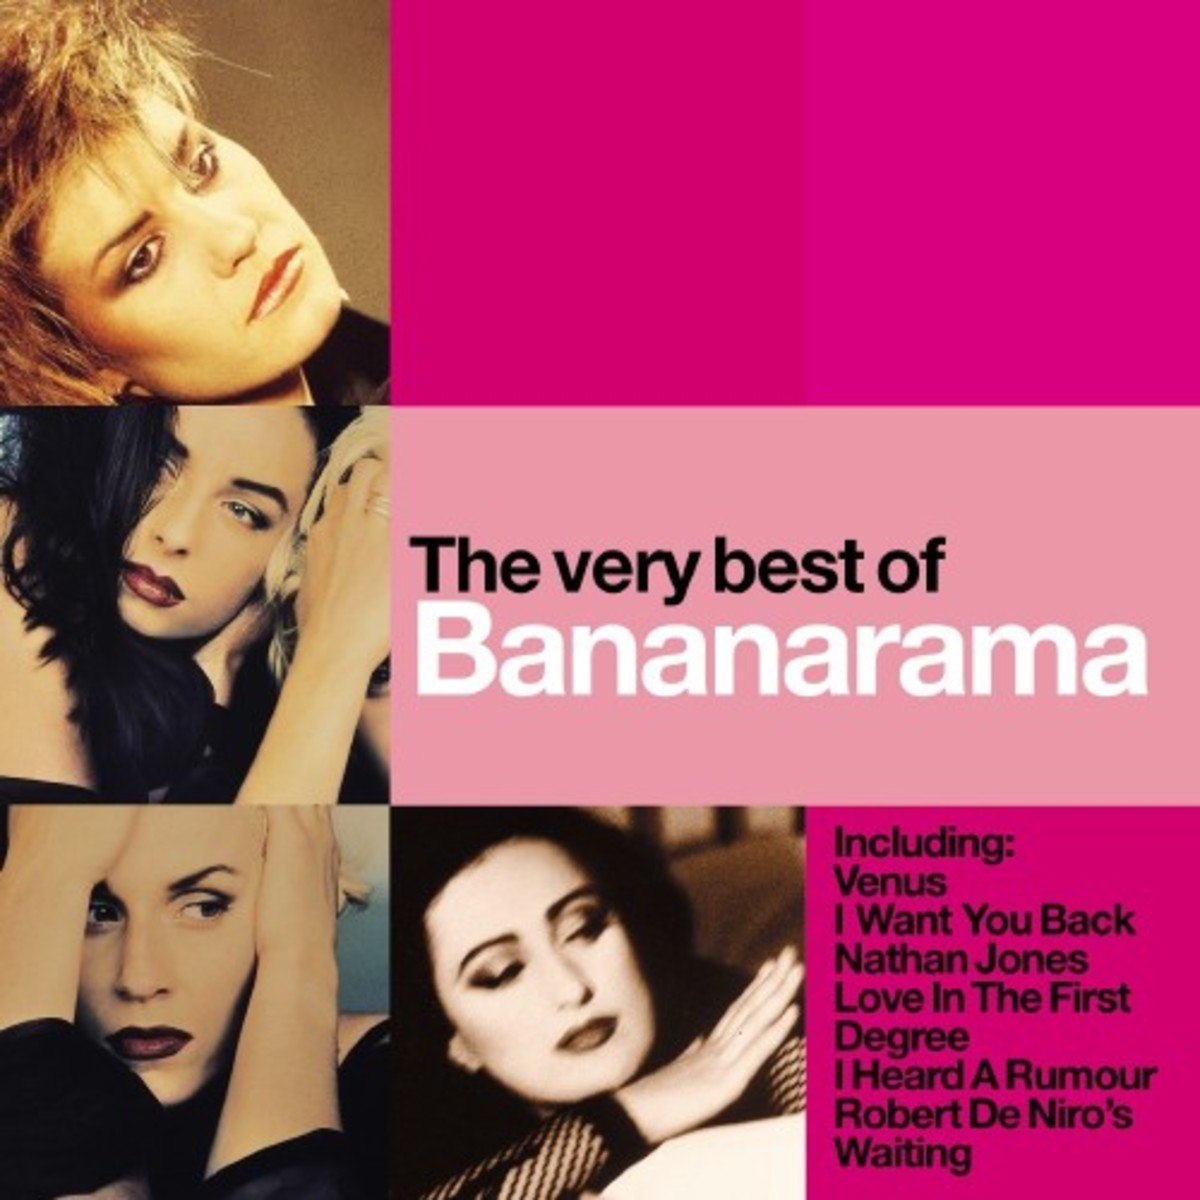 [AllCDCovers]_bananarama_the_very_best_of_bananarama_2001_retail_cd-front[1]